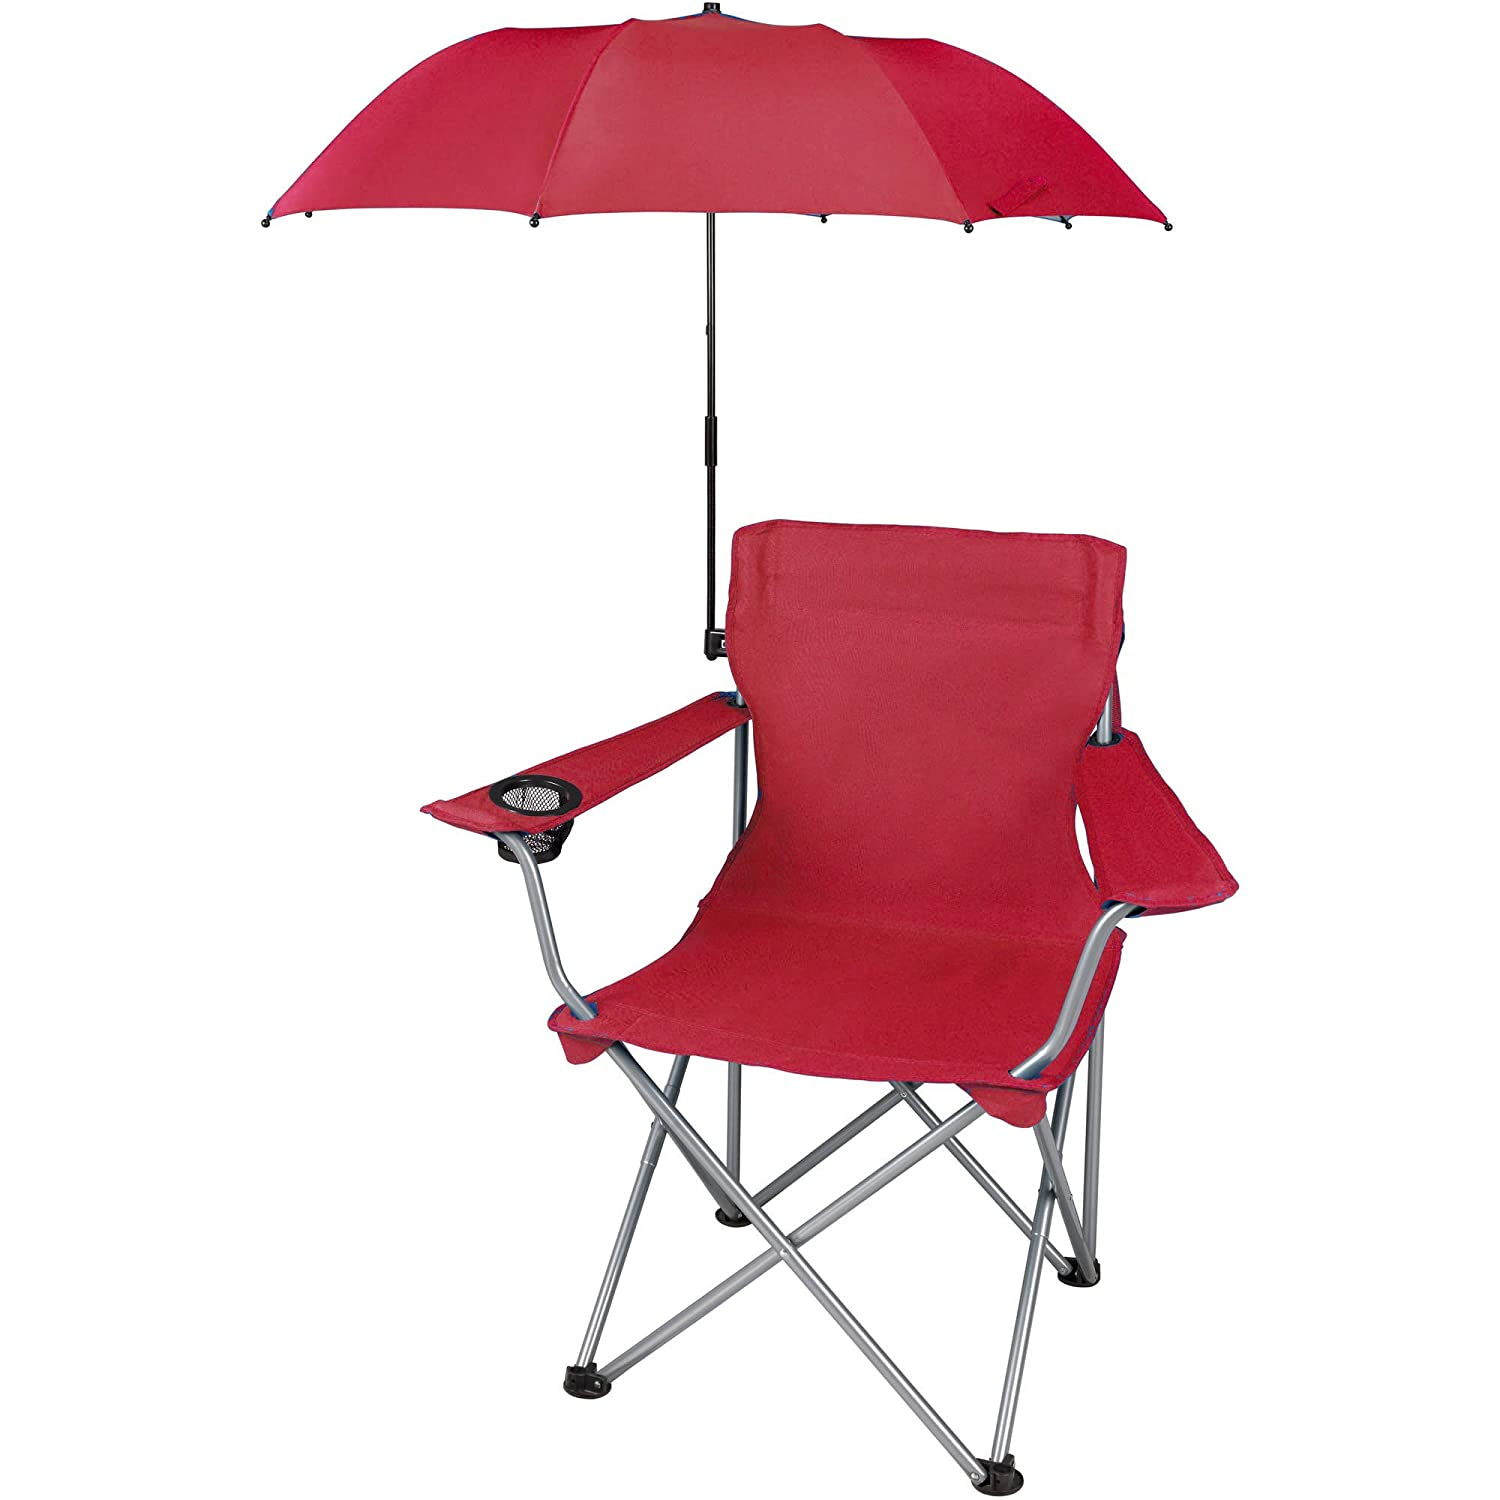 Amazon.com  Ozark Trail Attachable Umbrella for Outdoor Folding Chair Red - UMBRELLA ONLY  Sports u0026 Outdoors  sc 1 st  Amazon.com & Amazon.com : Ozark Trail Attachable Umbrella for Outdoor Folding ...